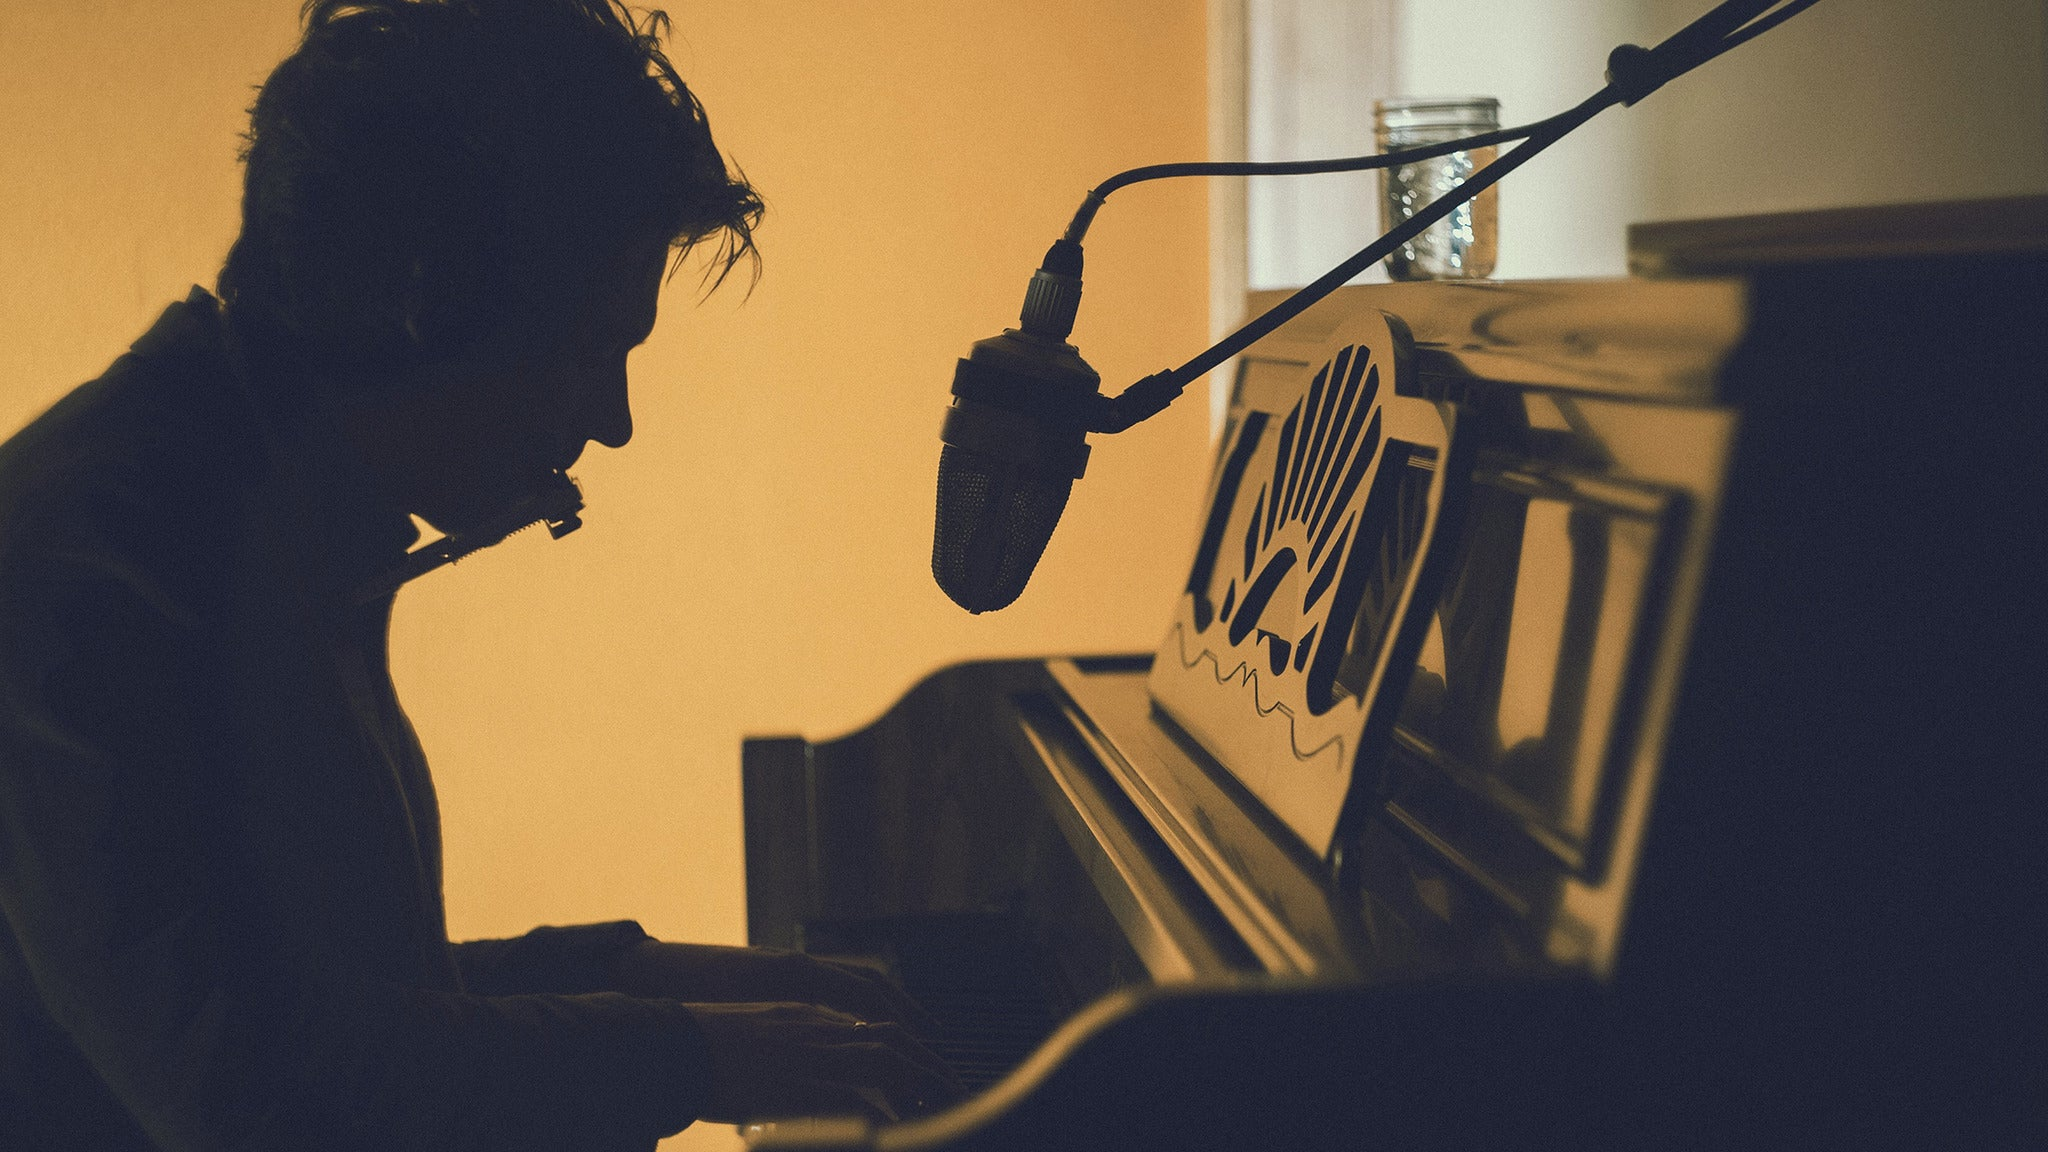 An Intimate Solo Performance with Conor Oberst - Los Angeles, CA 90010